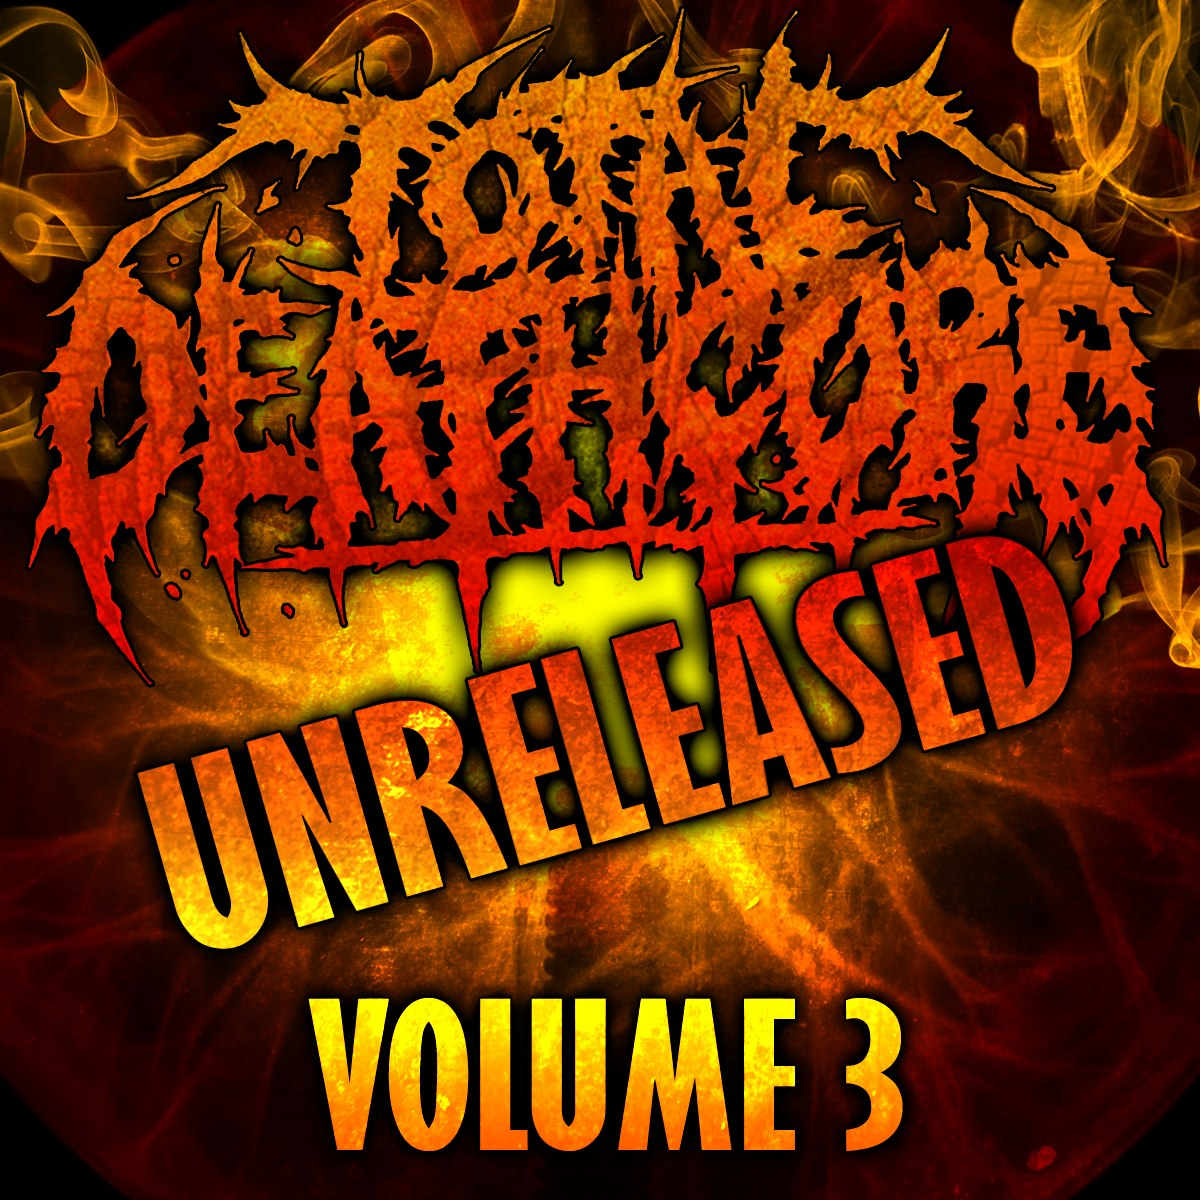 Total Deathcore Volume 3 Unreleased